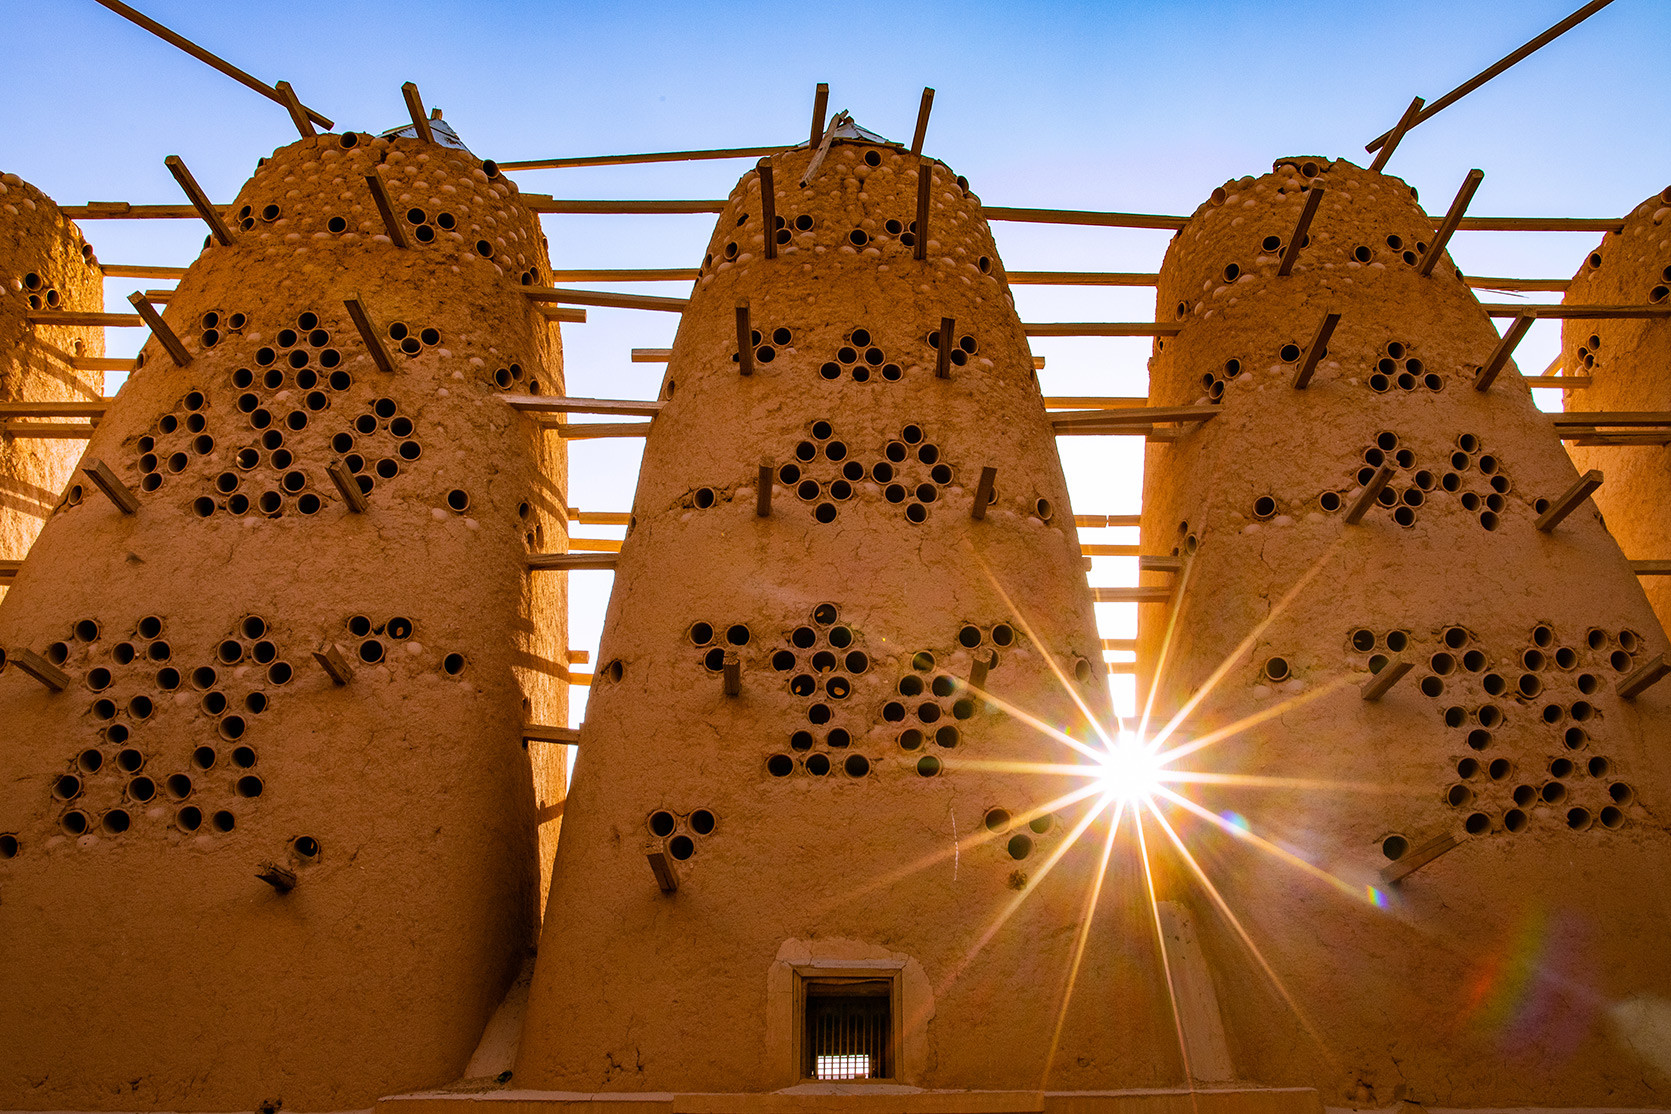 Historical Adobe Pigeon Towers Located Near Riyadh Captured in Photographs by Rich Hawkins